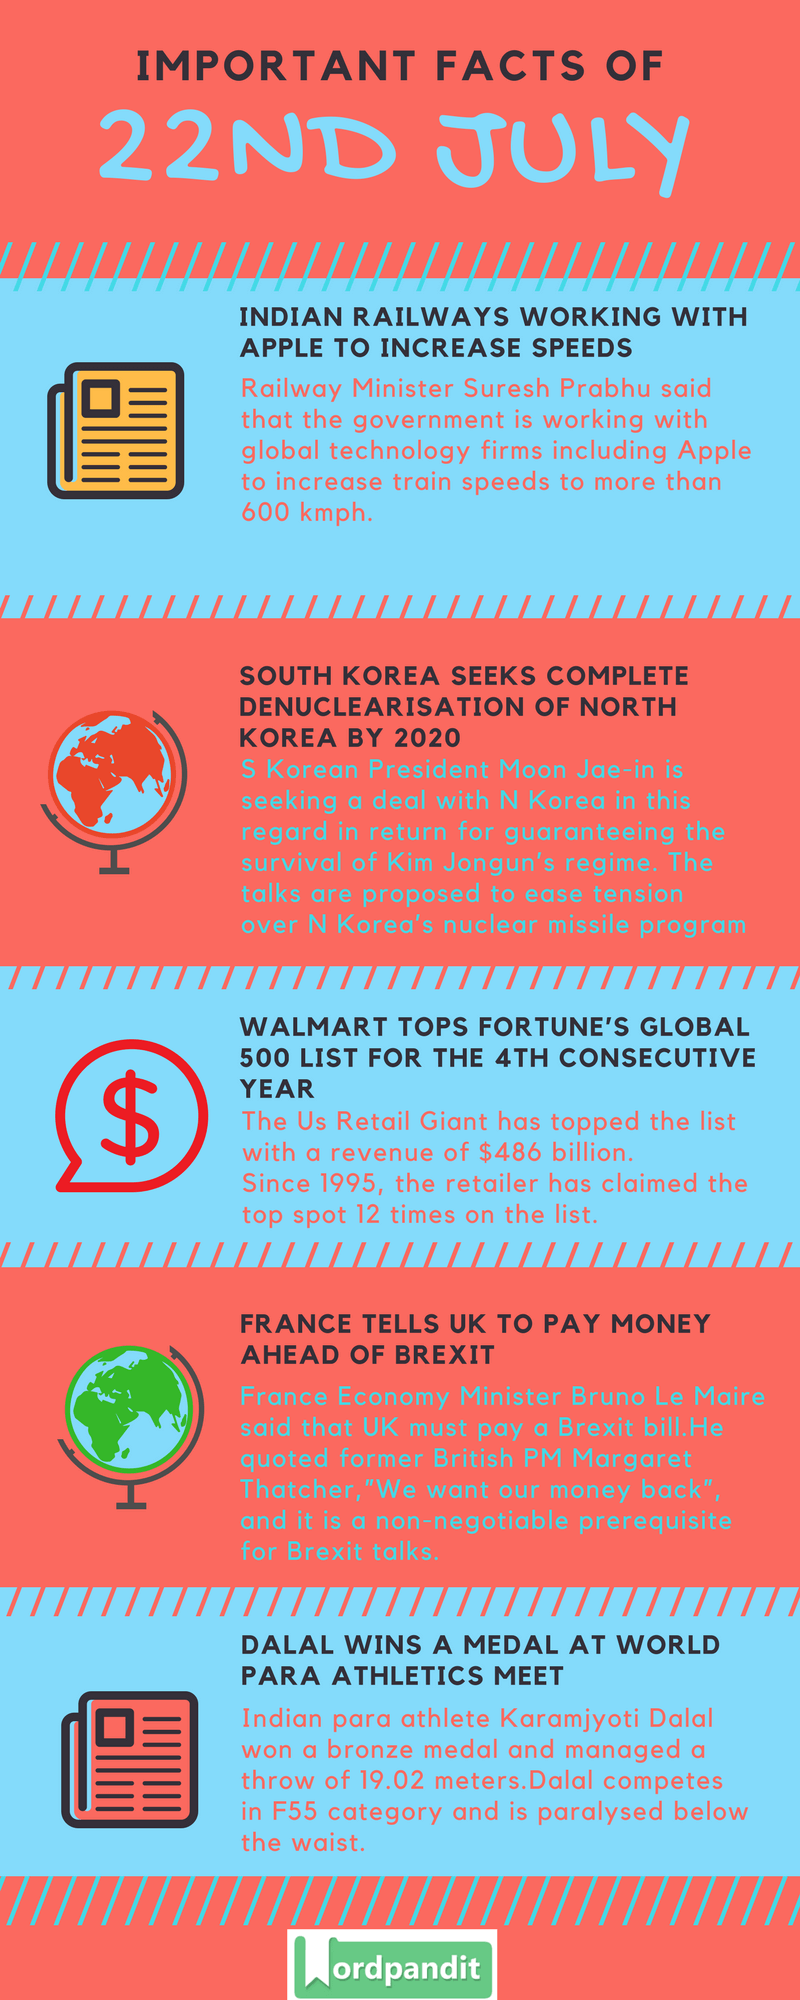 Daily-Current-Affairs-22-july-2017-Current-Affairs-Quiz-july-22-2017-Current-Affairs-Infographic